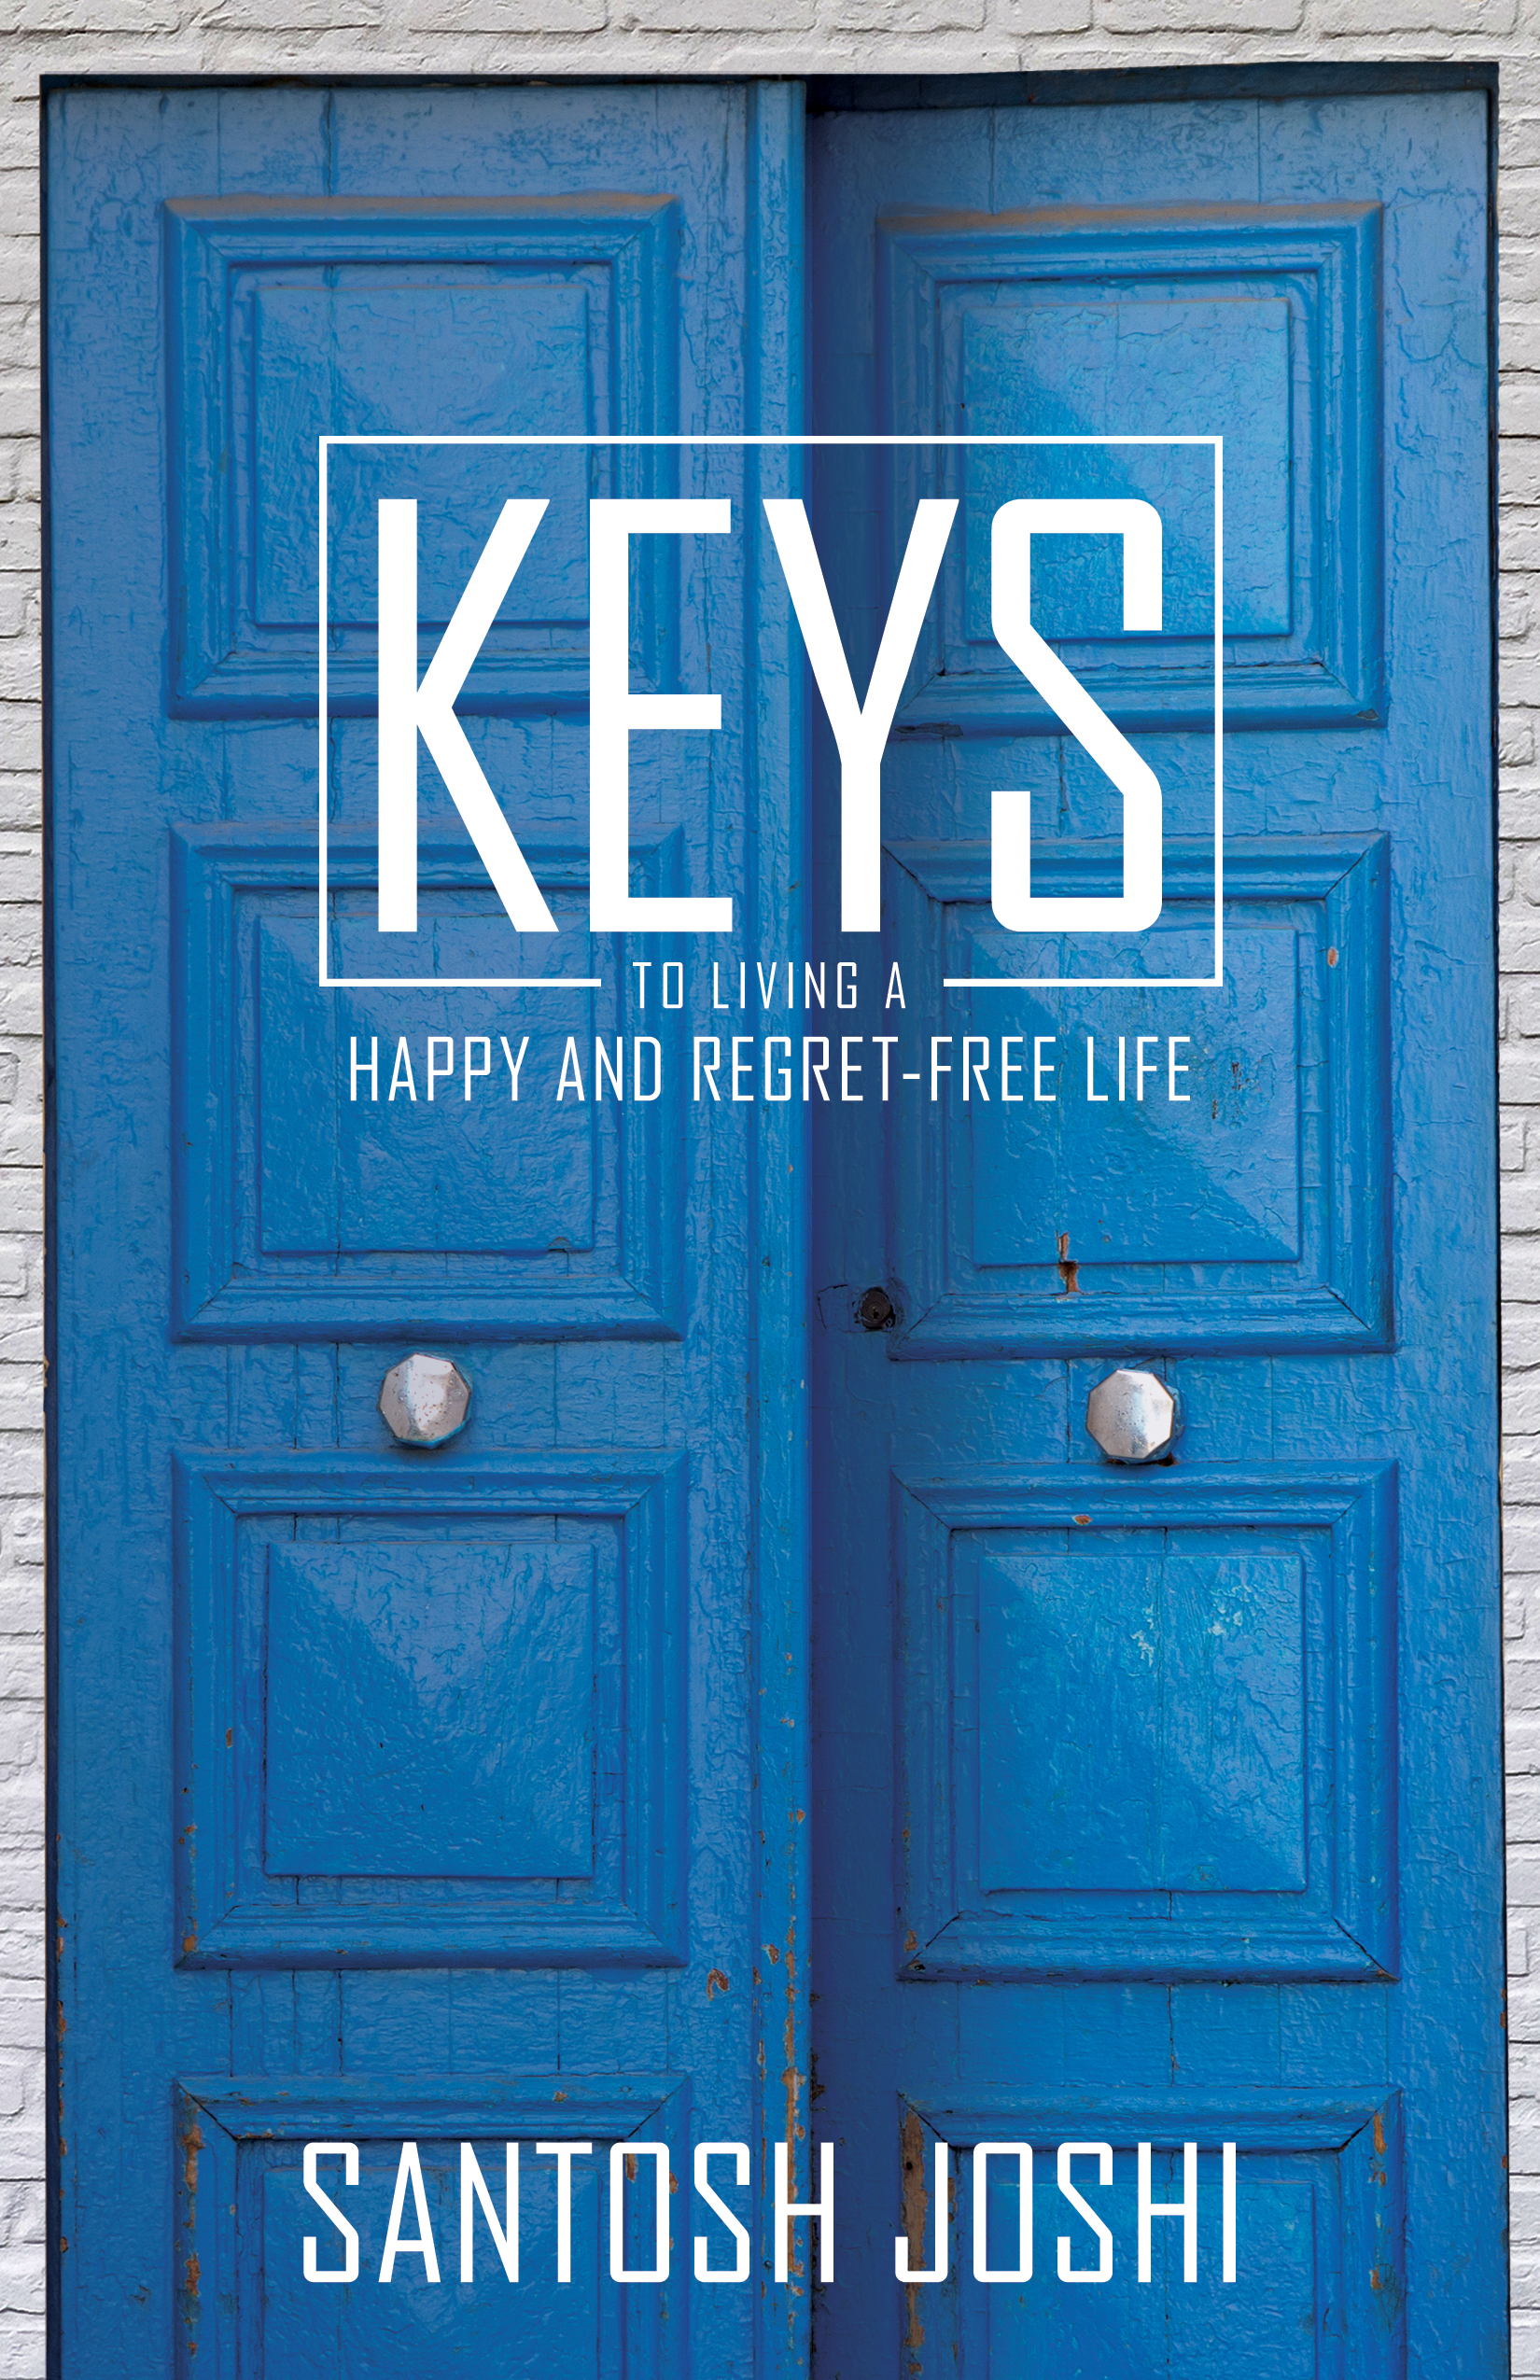 Keys to Living a Happy and Regret-Free Life - Santosh Joshi